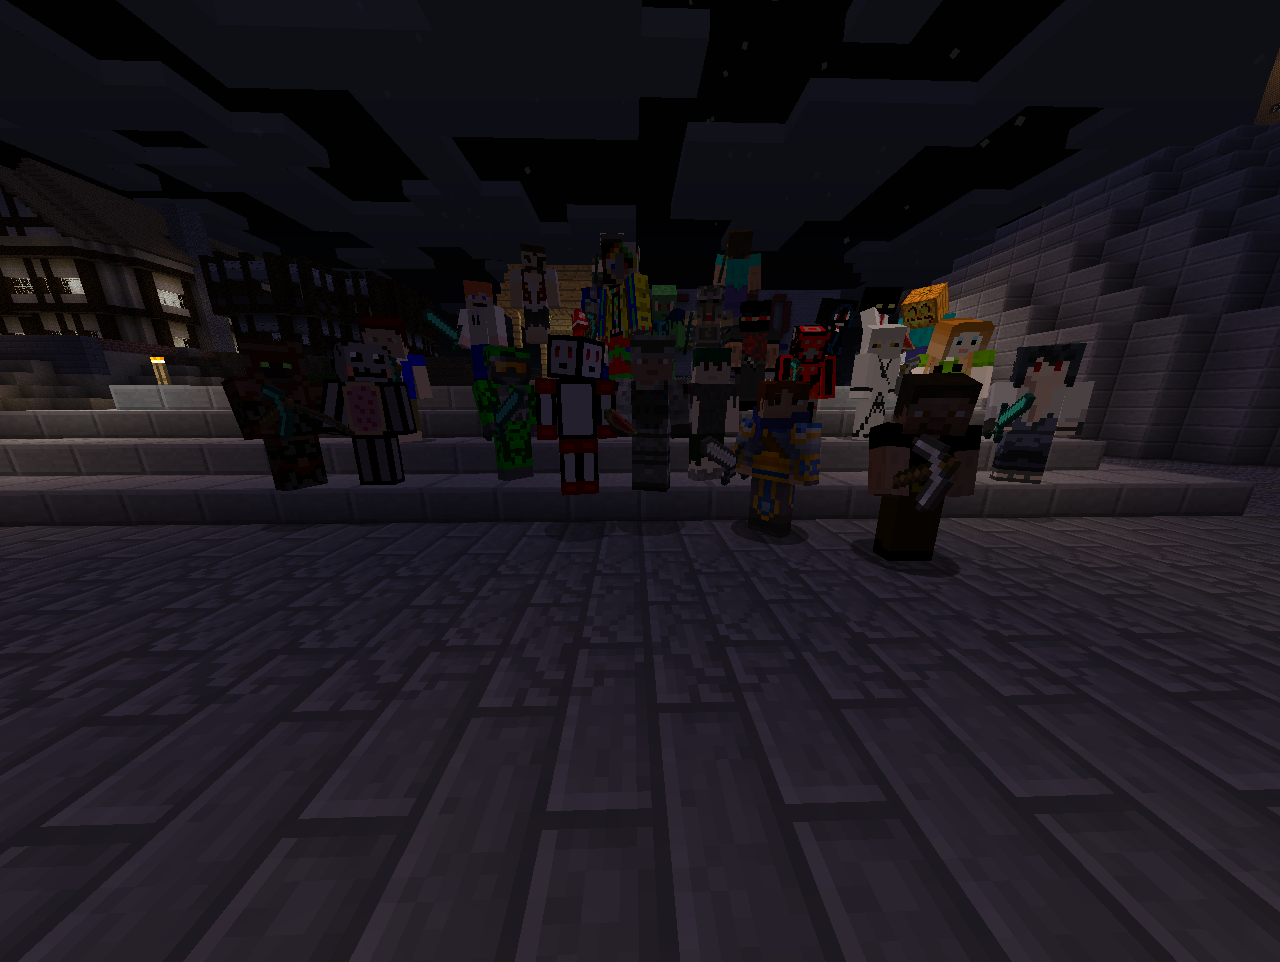 People from minecraft!